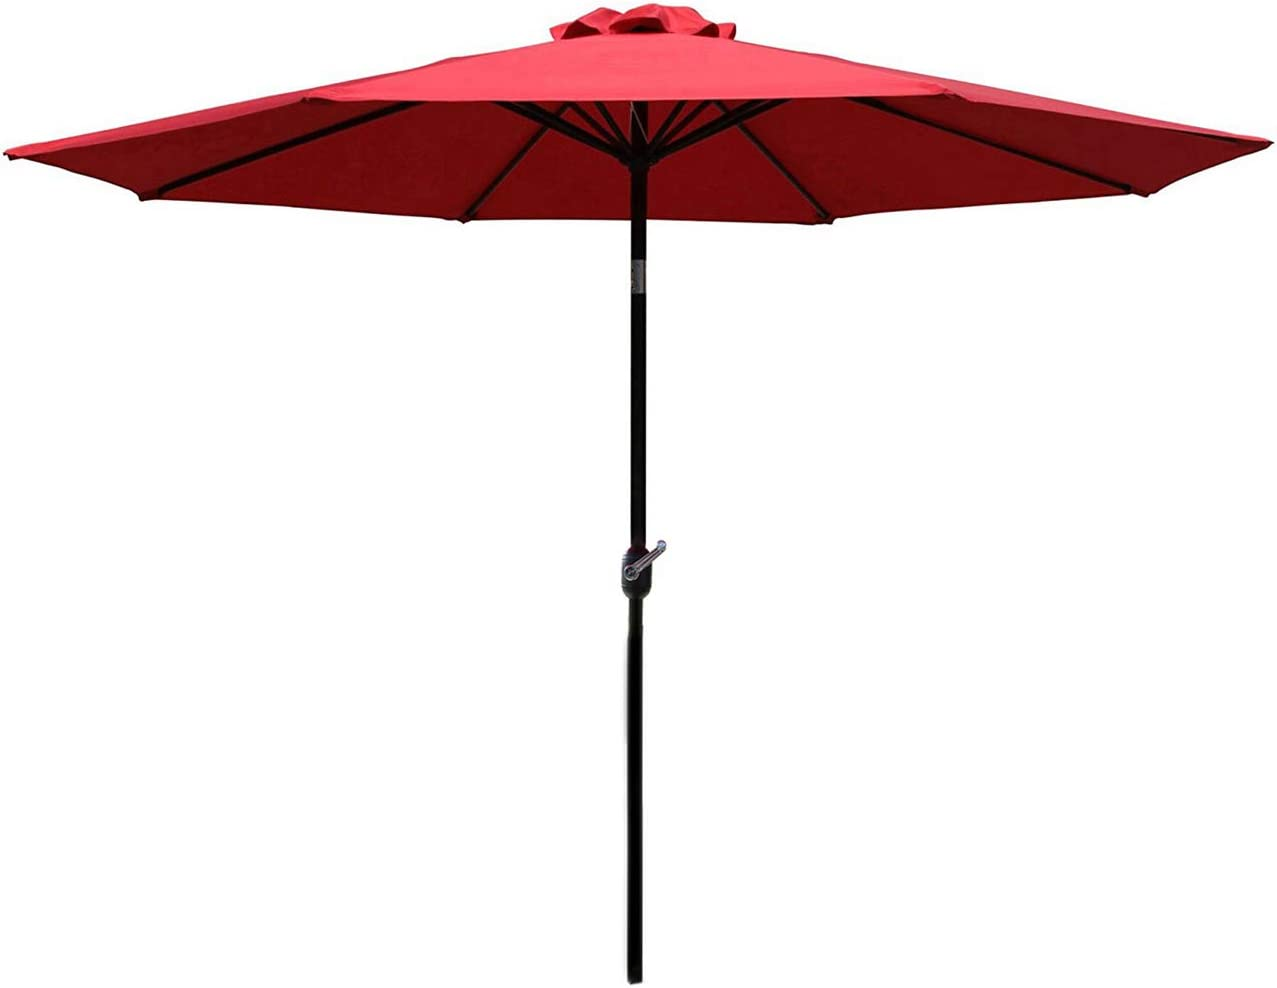 Sunnyglade 9Ft Patio Umbrella Outdoor Table Umbrella with 8 Sturdy Ribs (Red)